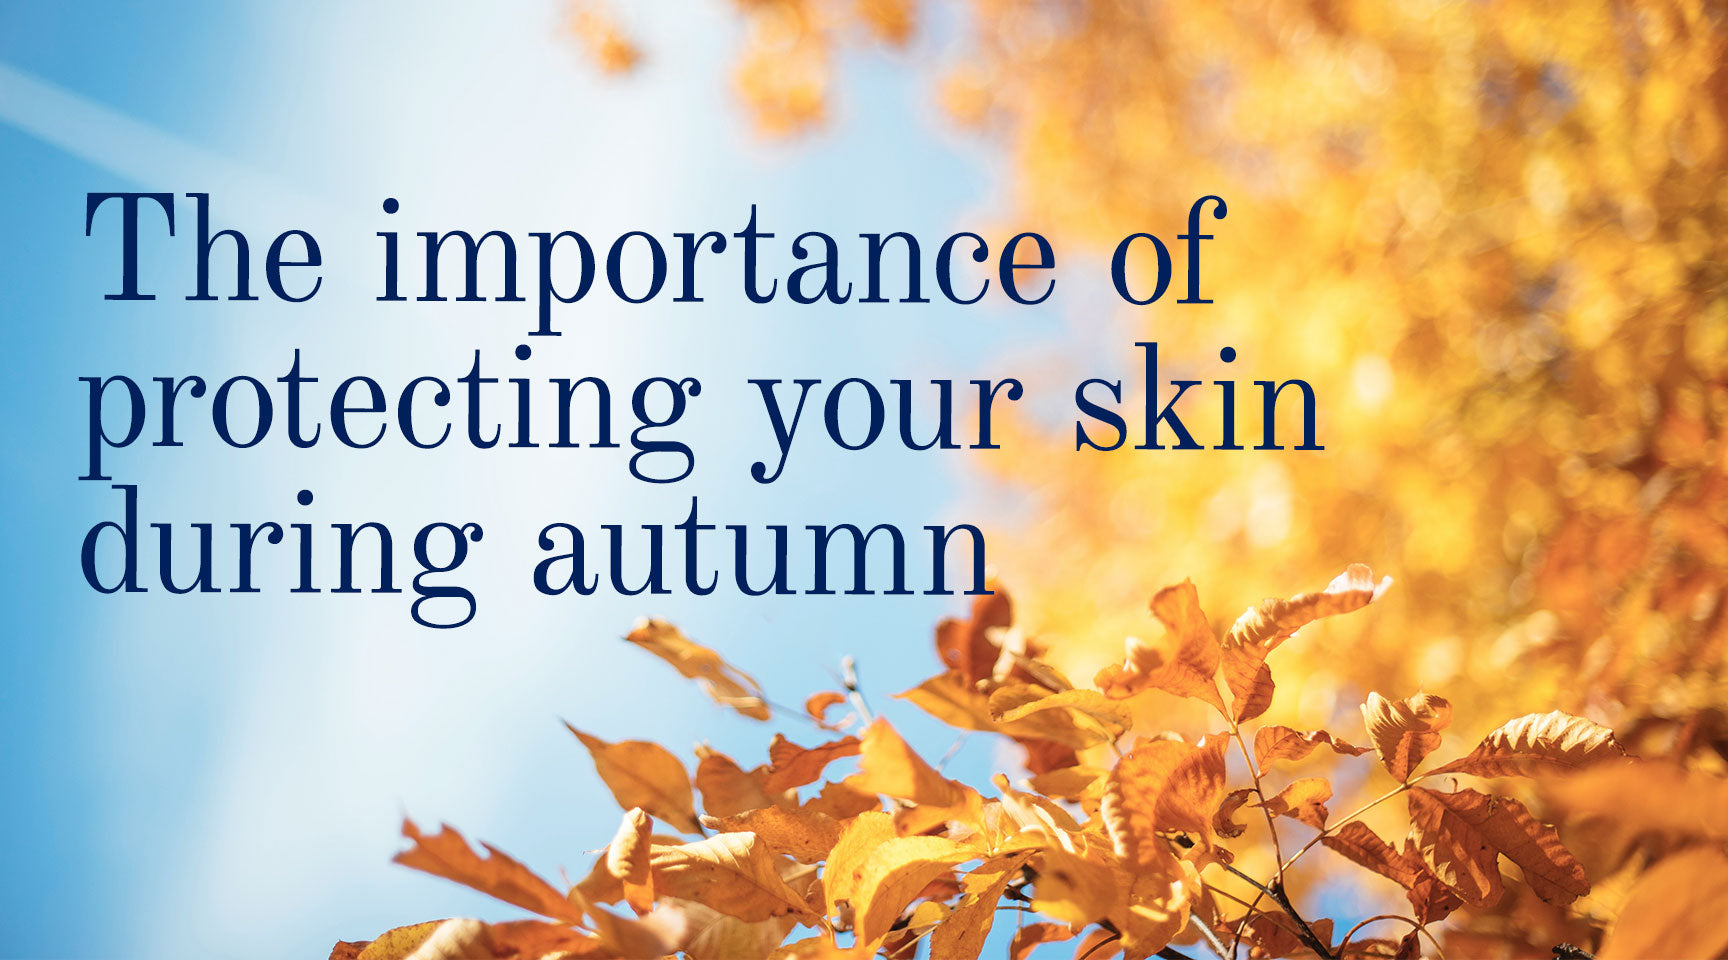 Solbari Blog: The importance of protecting your skin during autumn